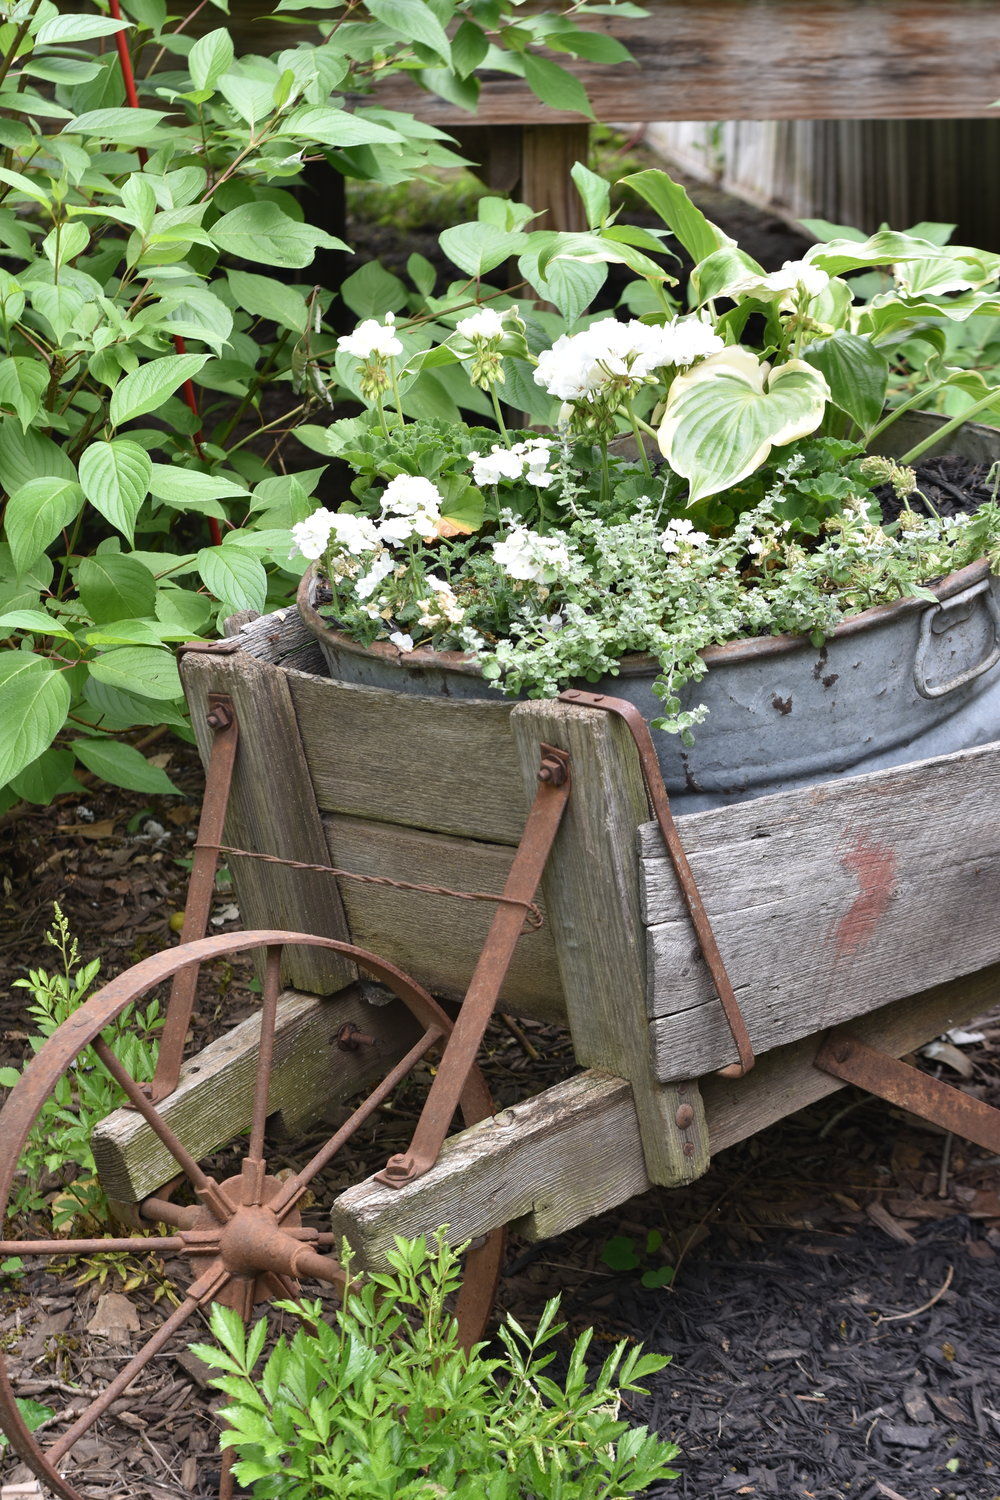 Galvanized bucket planter for flower plants. Old washtub in a wooden rustic wheelbarrow filled with white and green flowers | Rocky Hedge Farm